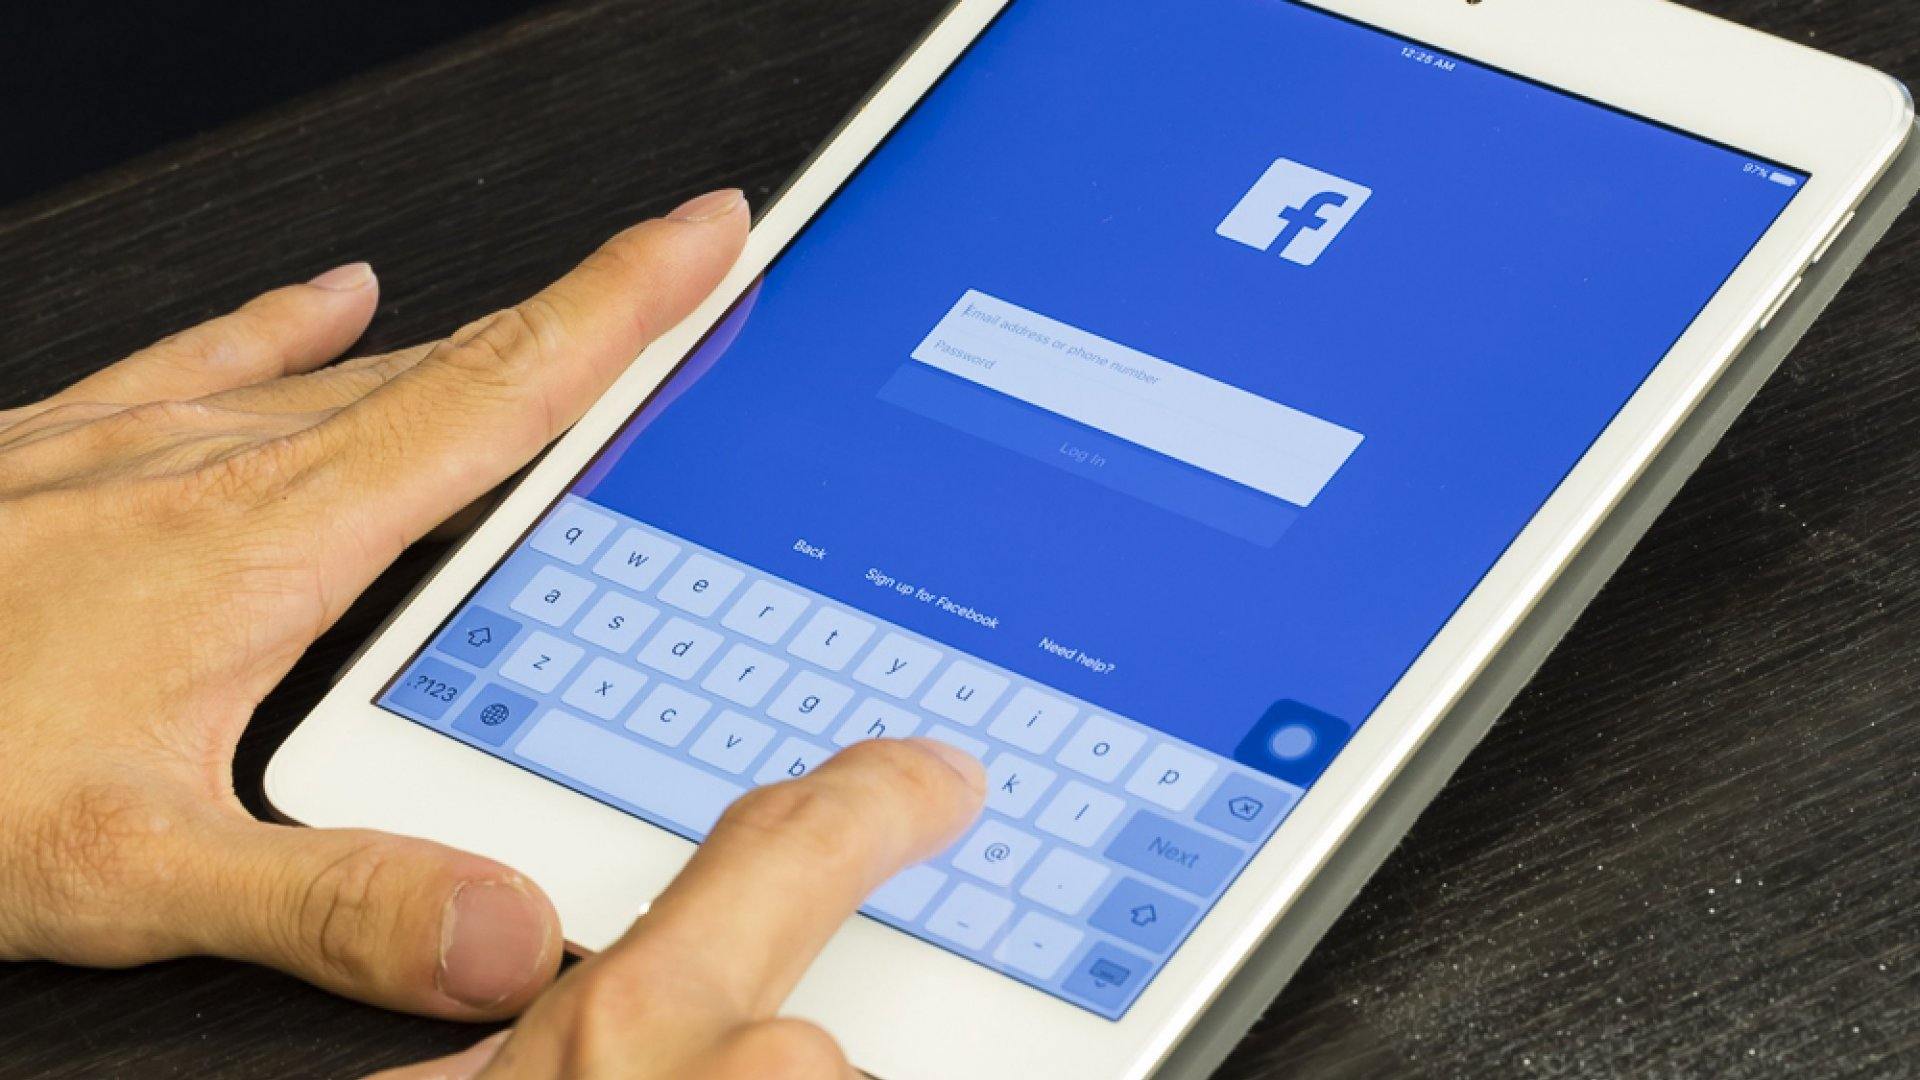 Go Check This Facebook Privacy Setting Right Now. You Might Be Surprised to See How Facebook Is Using Your Phone Number